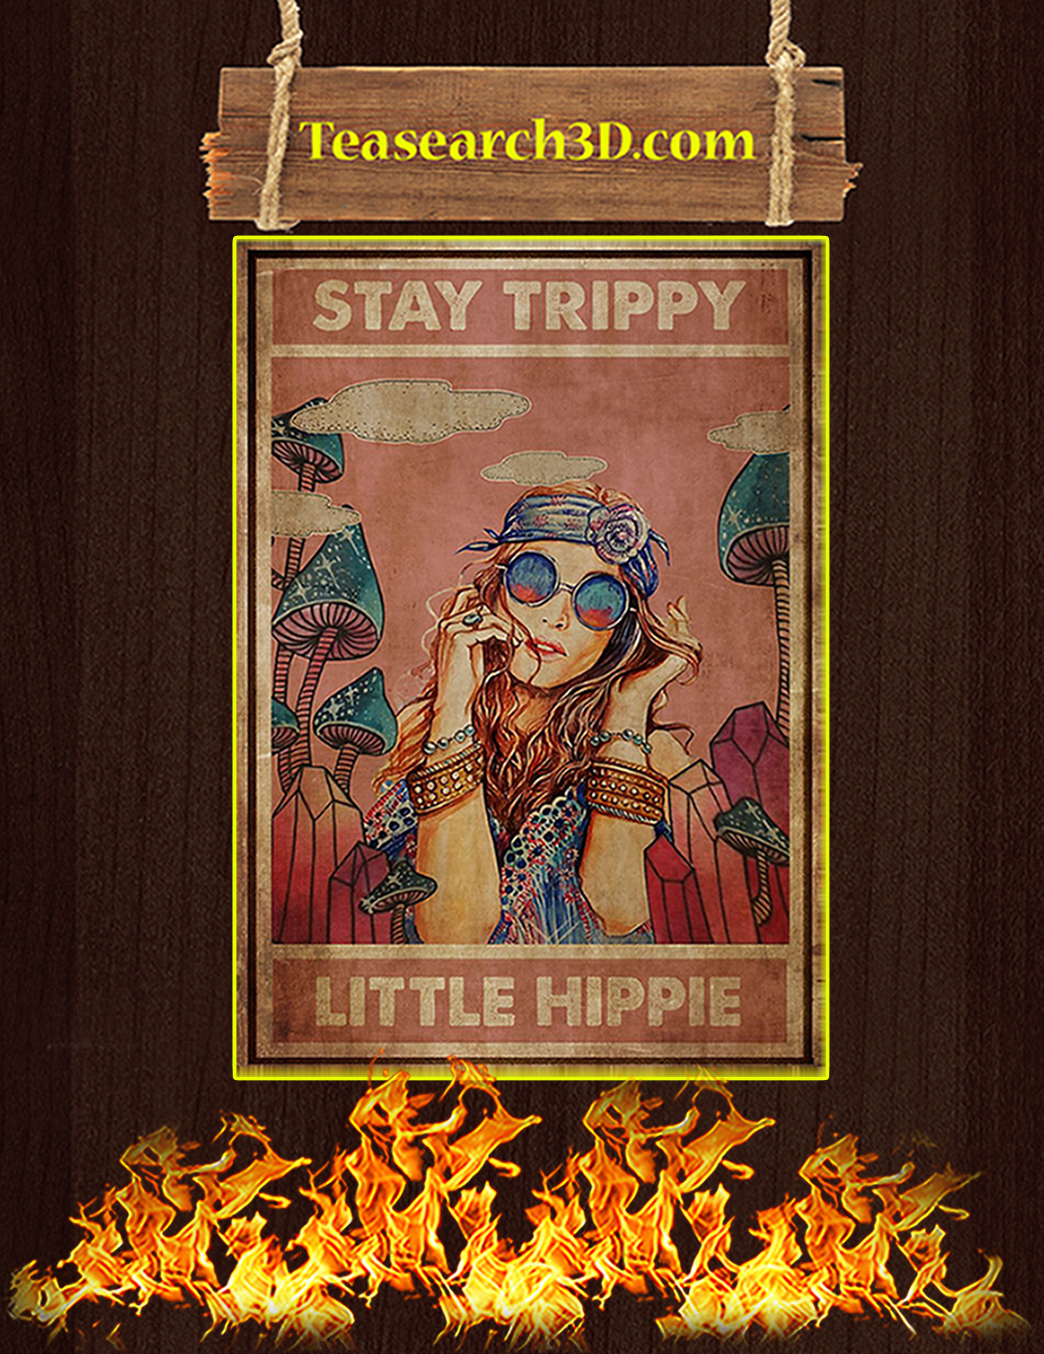 Stay trippy little hippie poster A1